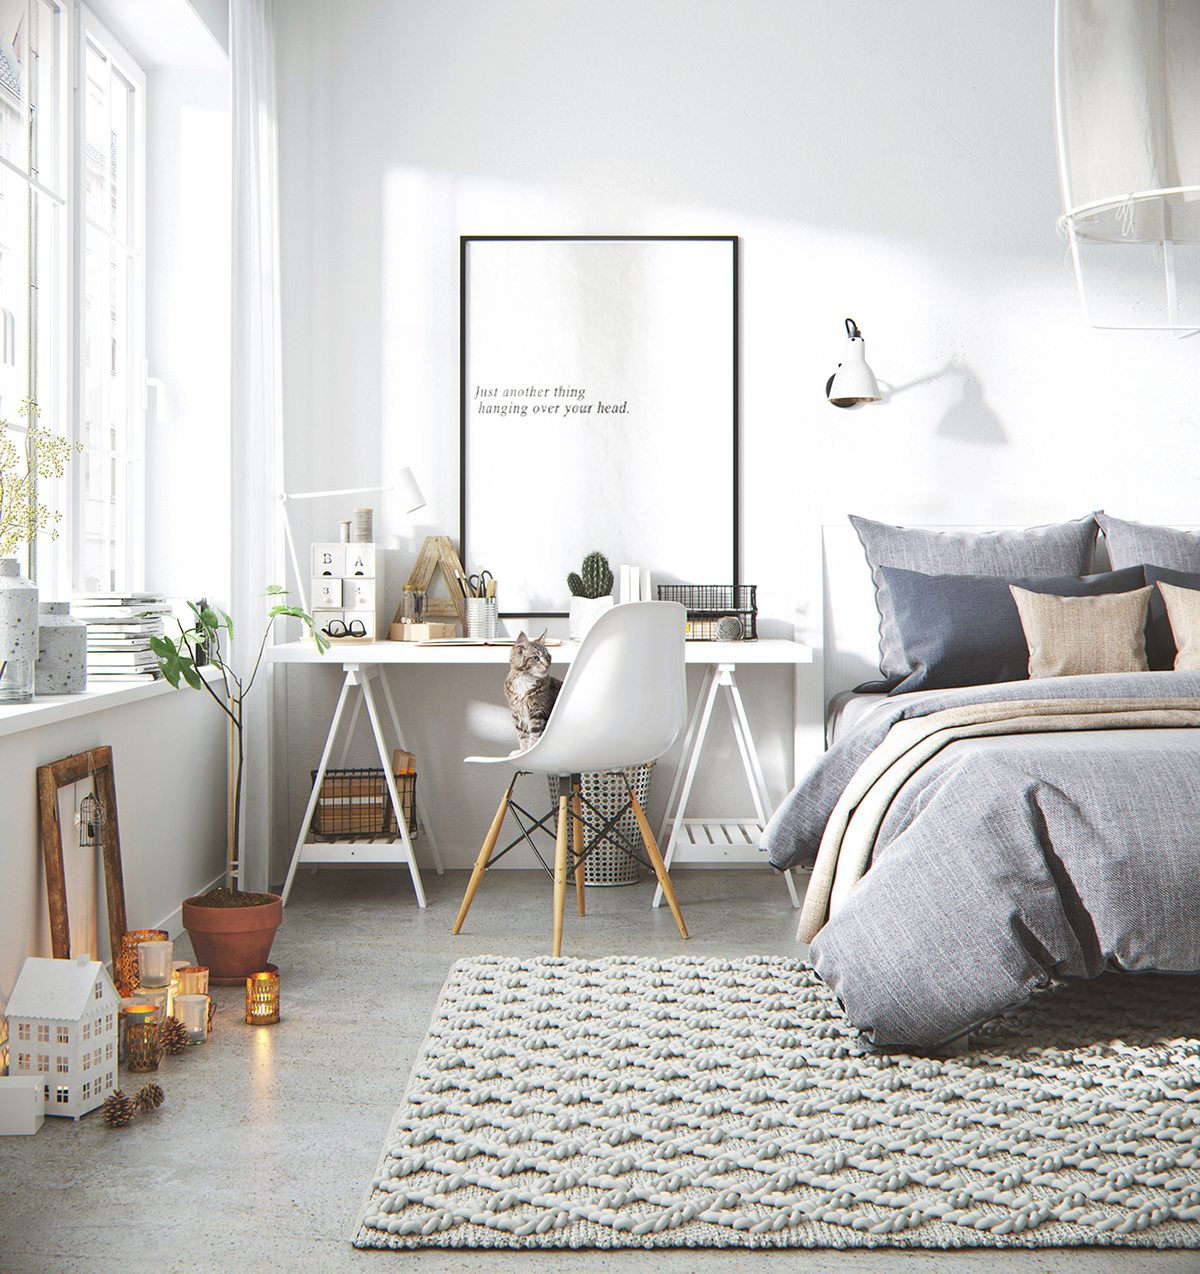 Bright And Cheerful: 5 Beautiful Scandinavian-Inspired